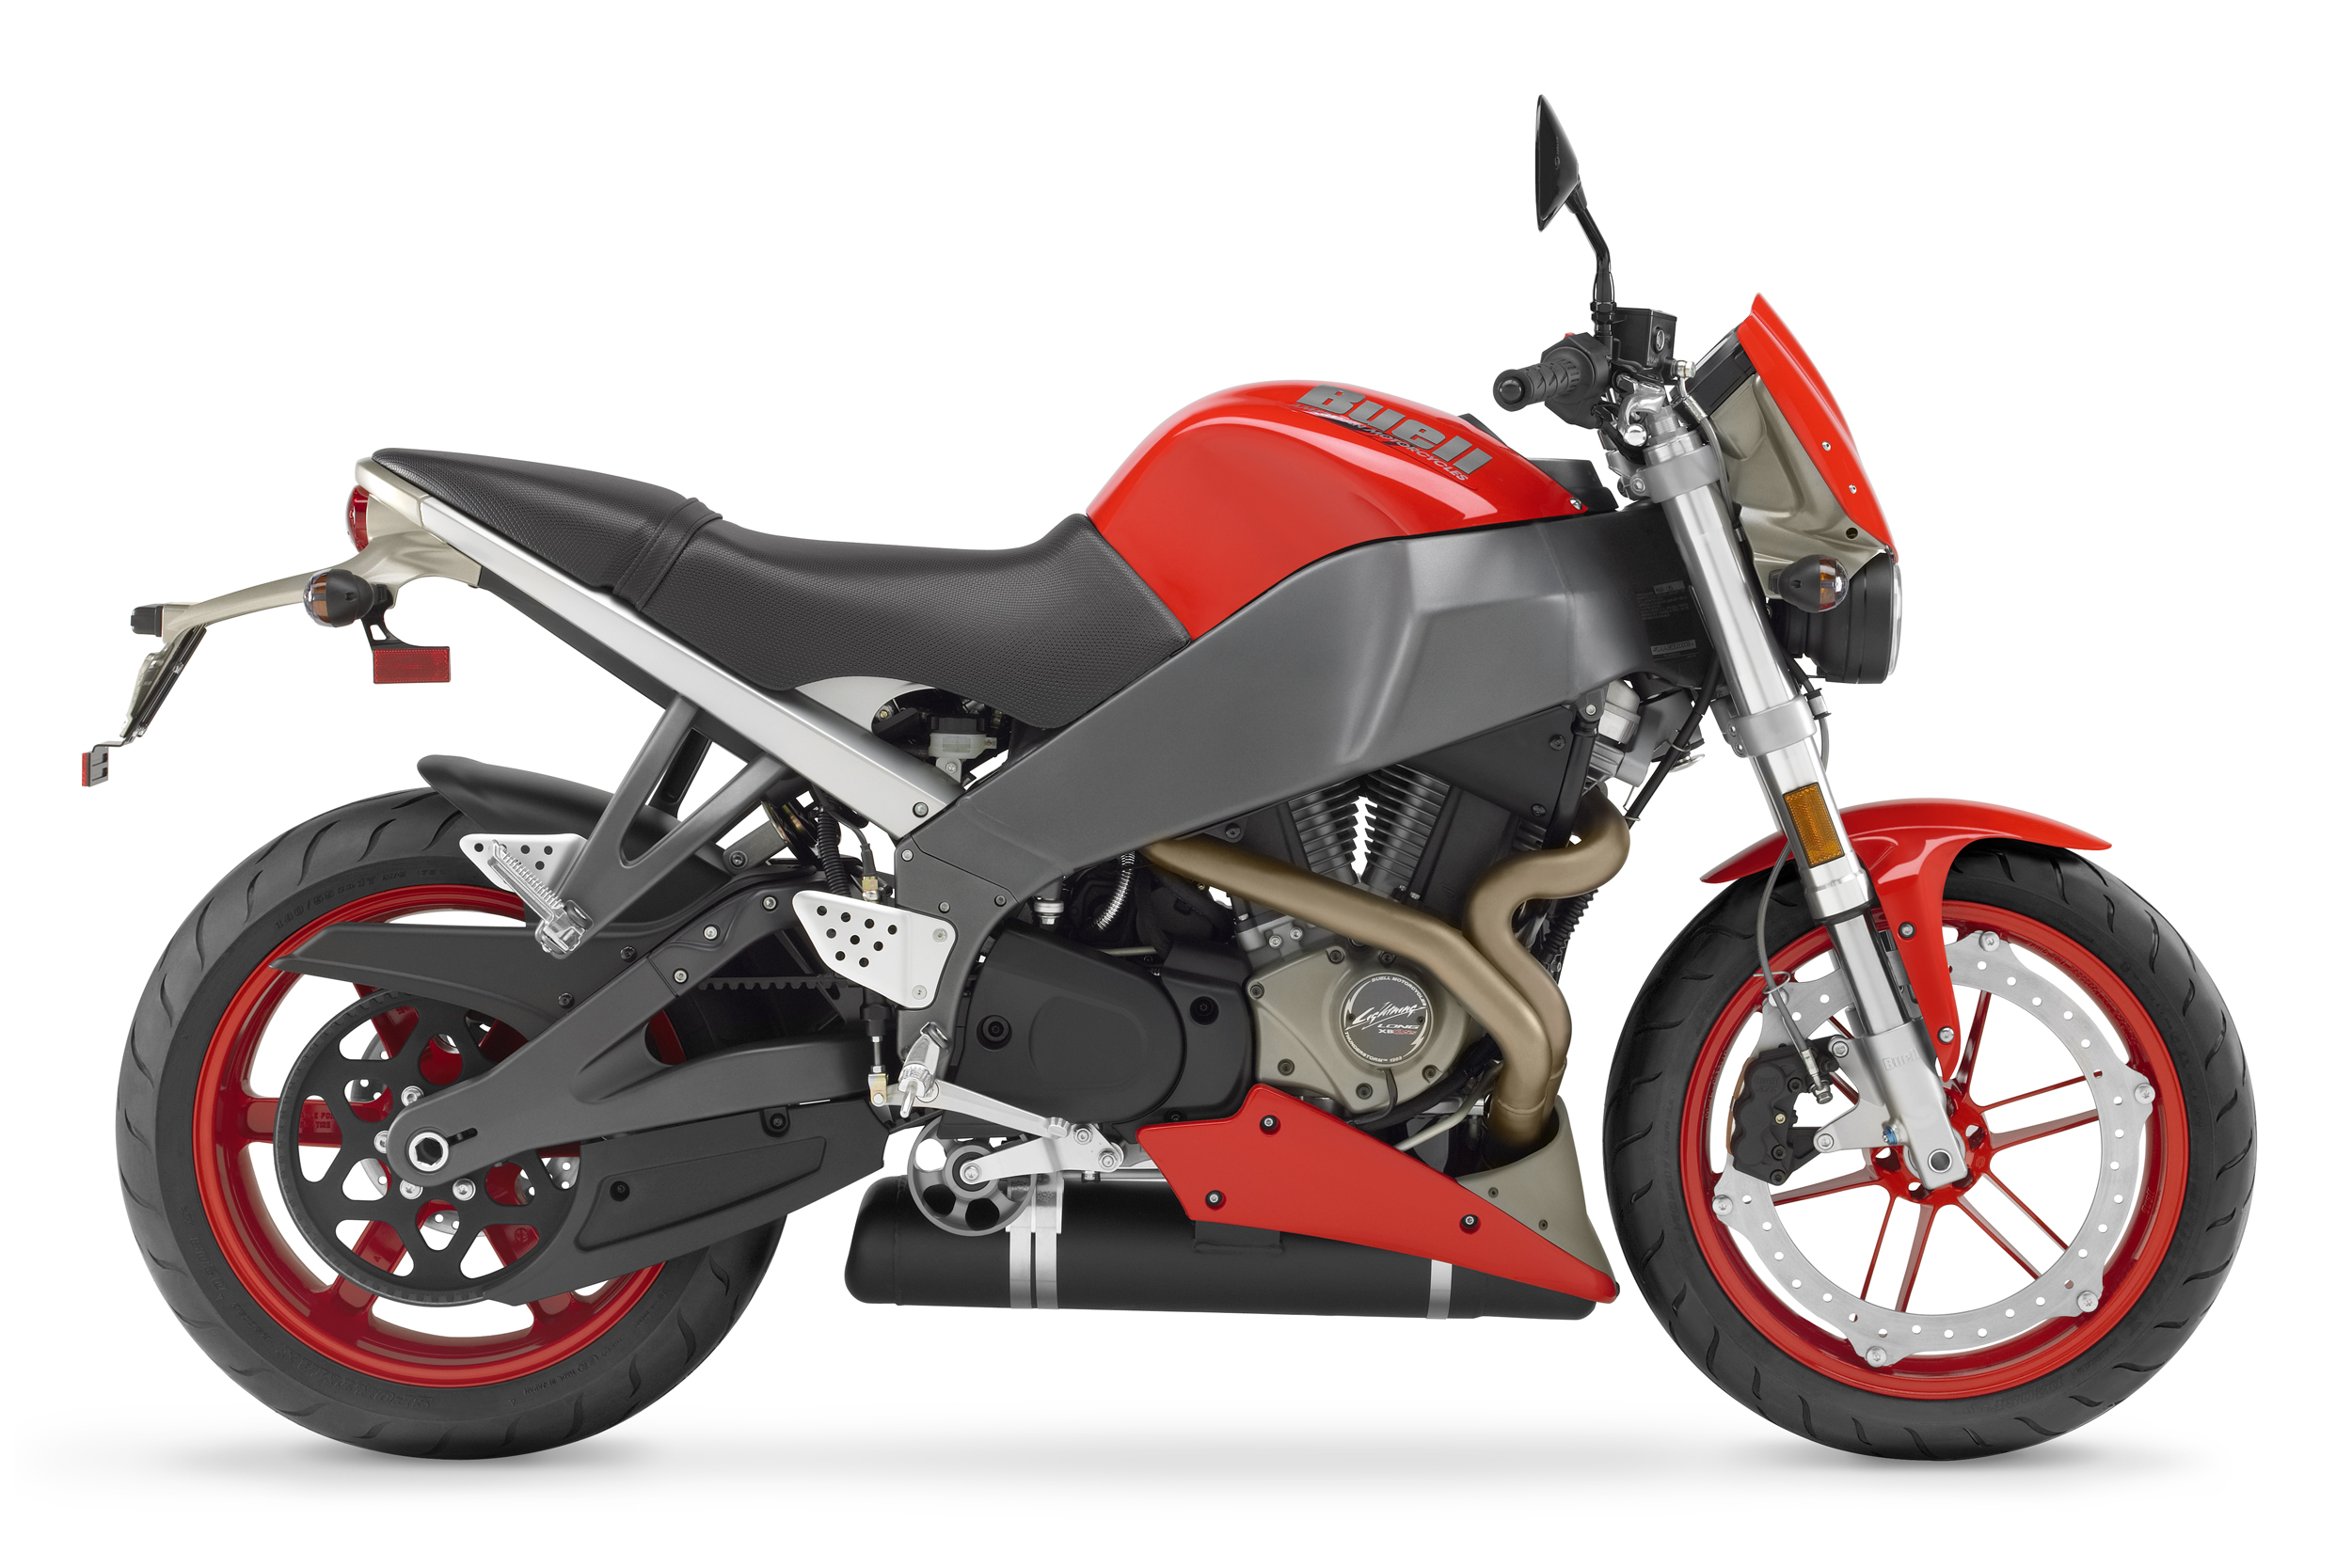 2006 Buell Lightning XB12S - Picture 52191   motorcycle